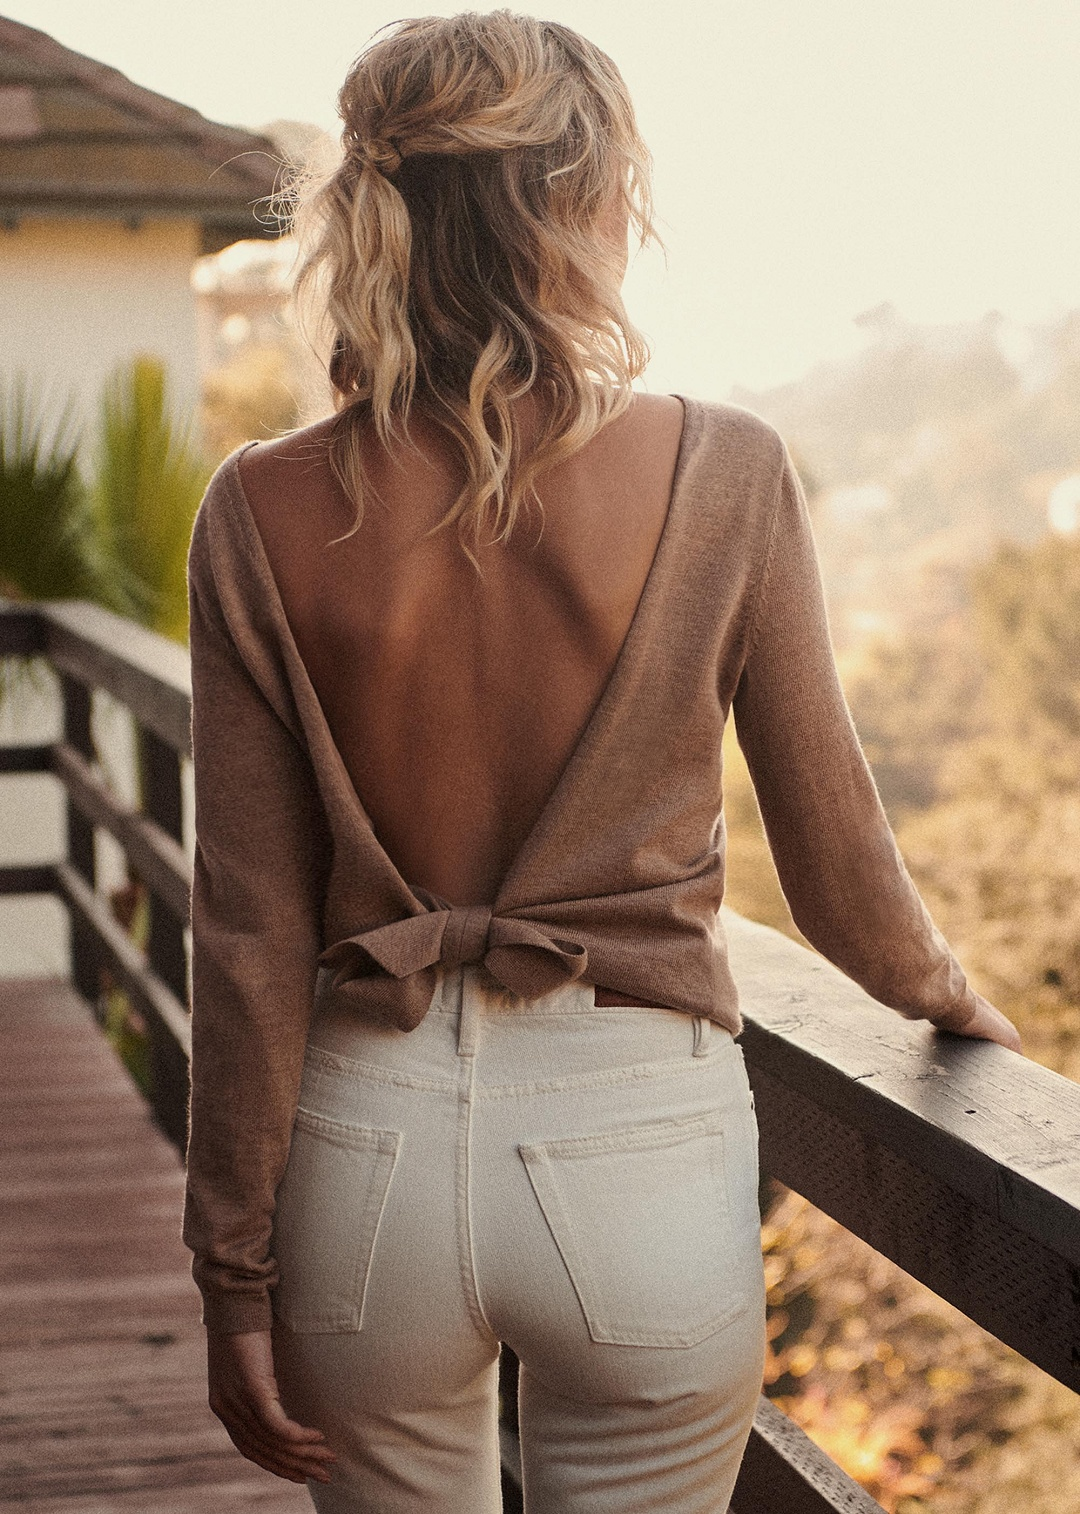 Bow Back Camel Sweater White Jeans